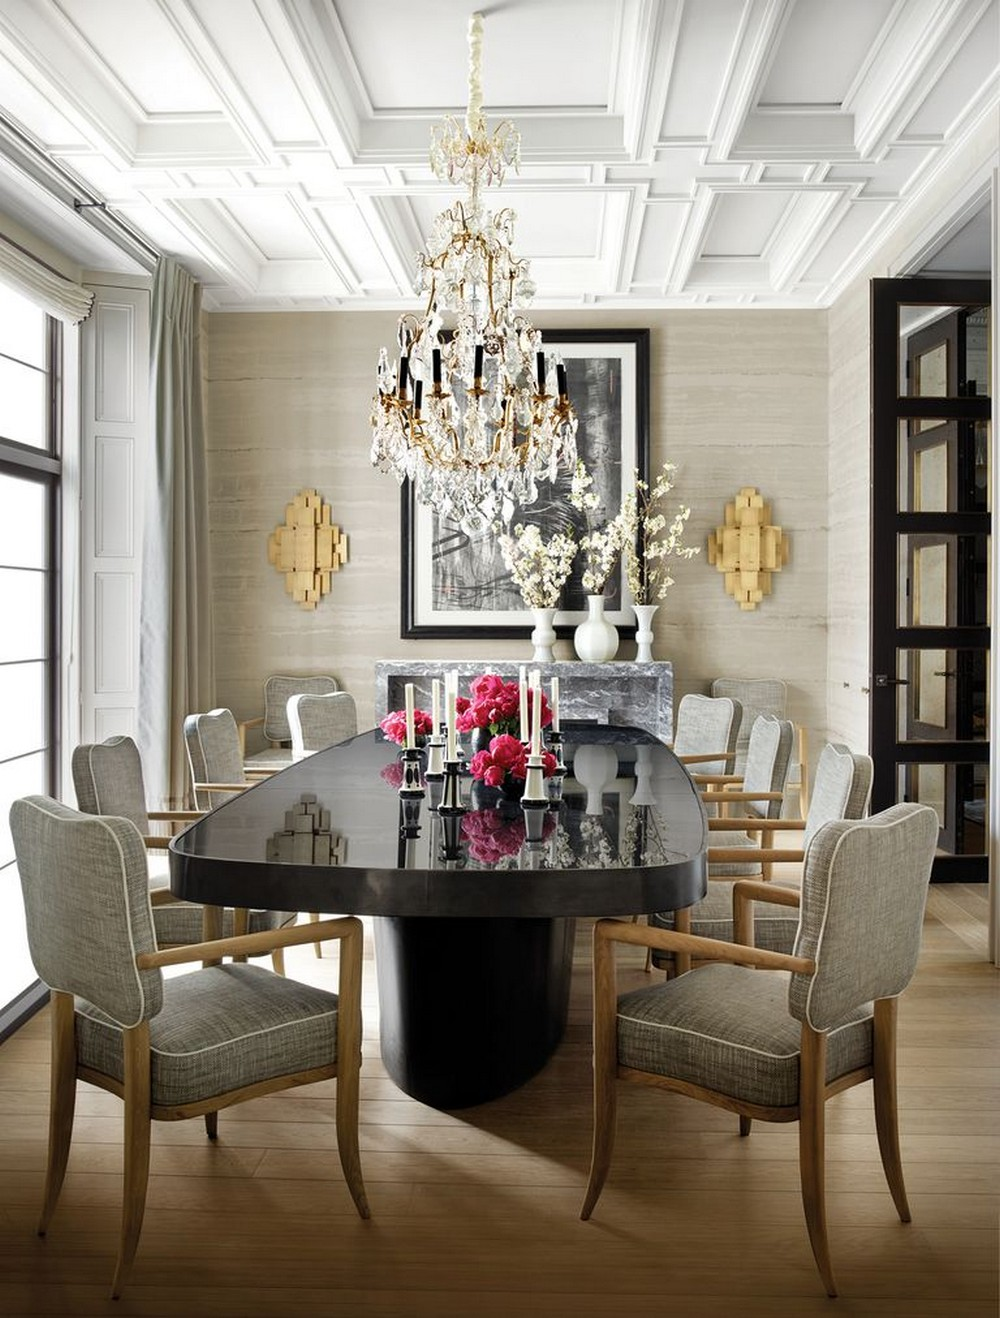 Recall Five High-End Residential Projects by Jean-Louis Deniot 4 residential projects Recall Five High-End Residential Projects by Jean-Louis Deniot Recall Five High End Residential Projects by Jean Louis Deniot 4